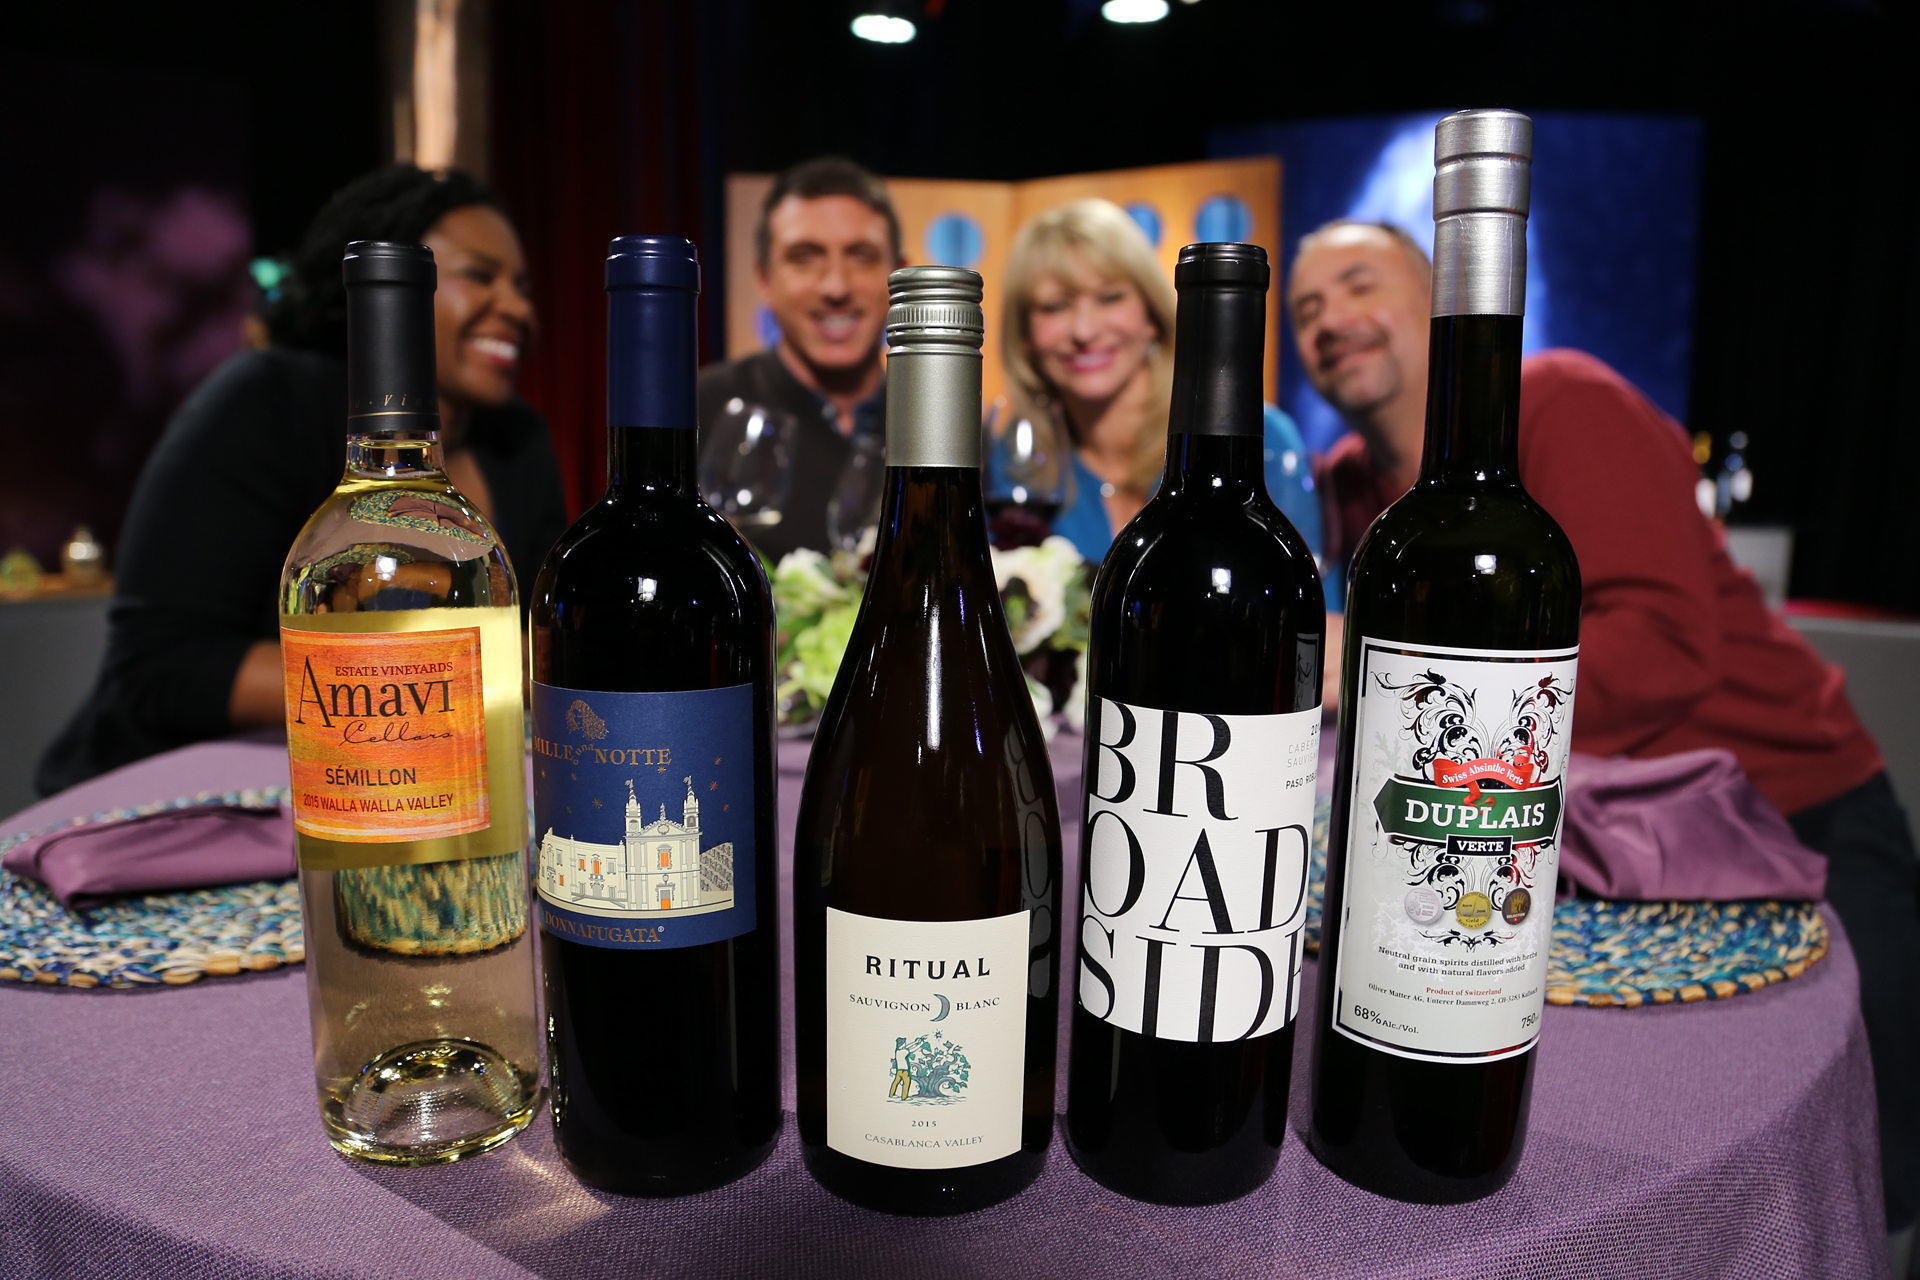 Wines that guests drank on the set of season 12 episode 2.